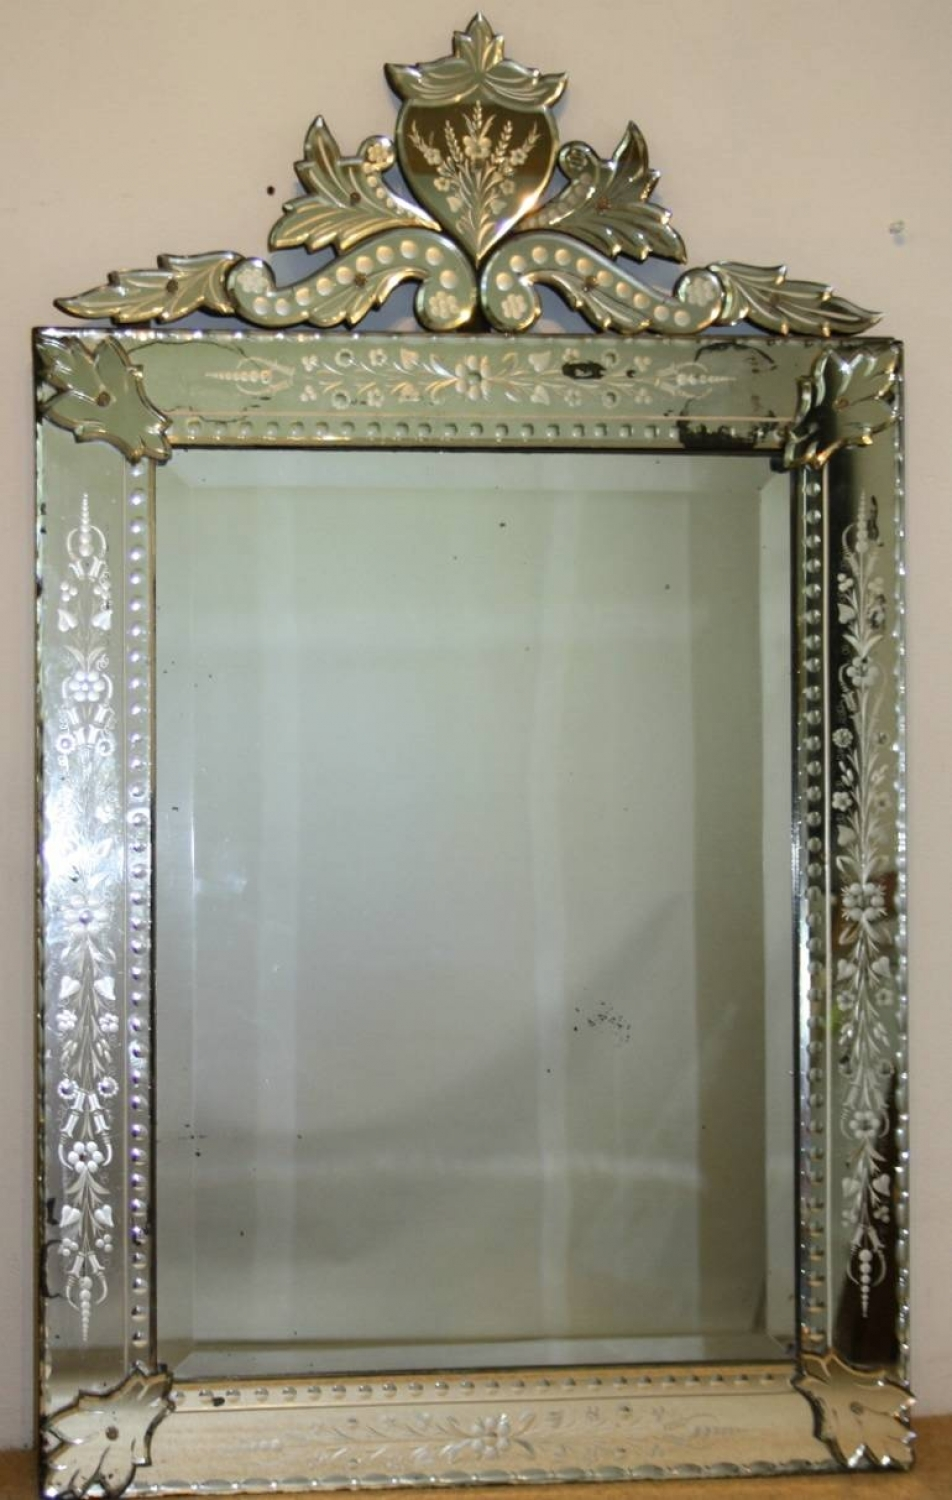 Antique Venetian Mirror Venetian Mirrors Pinterest Antiques Throughout Antique Venetian Mirrors For Sale (Image 5 of 15)